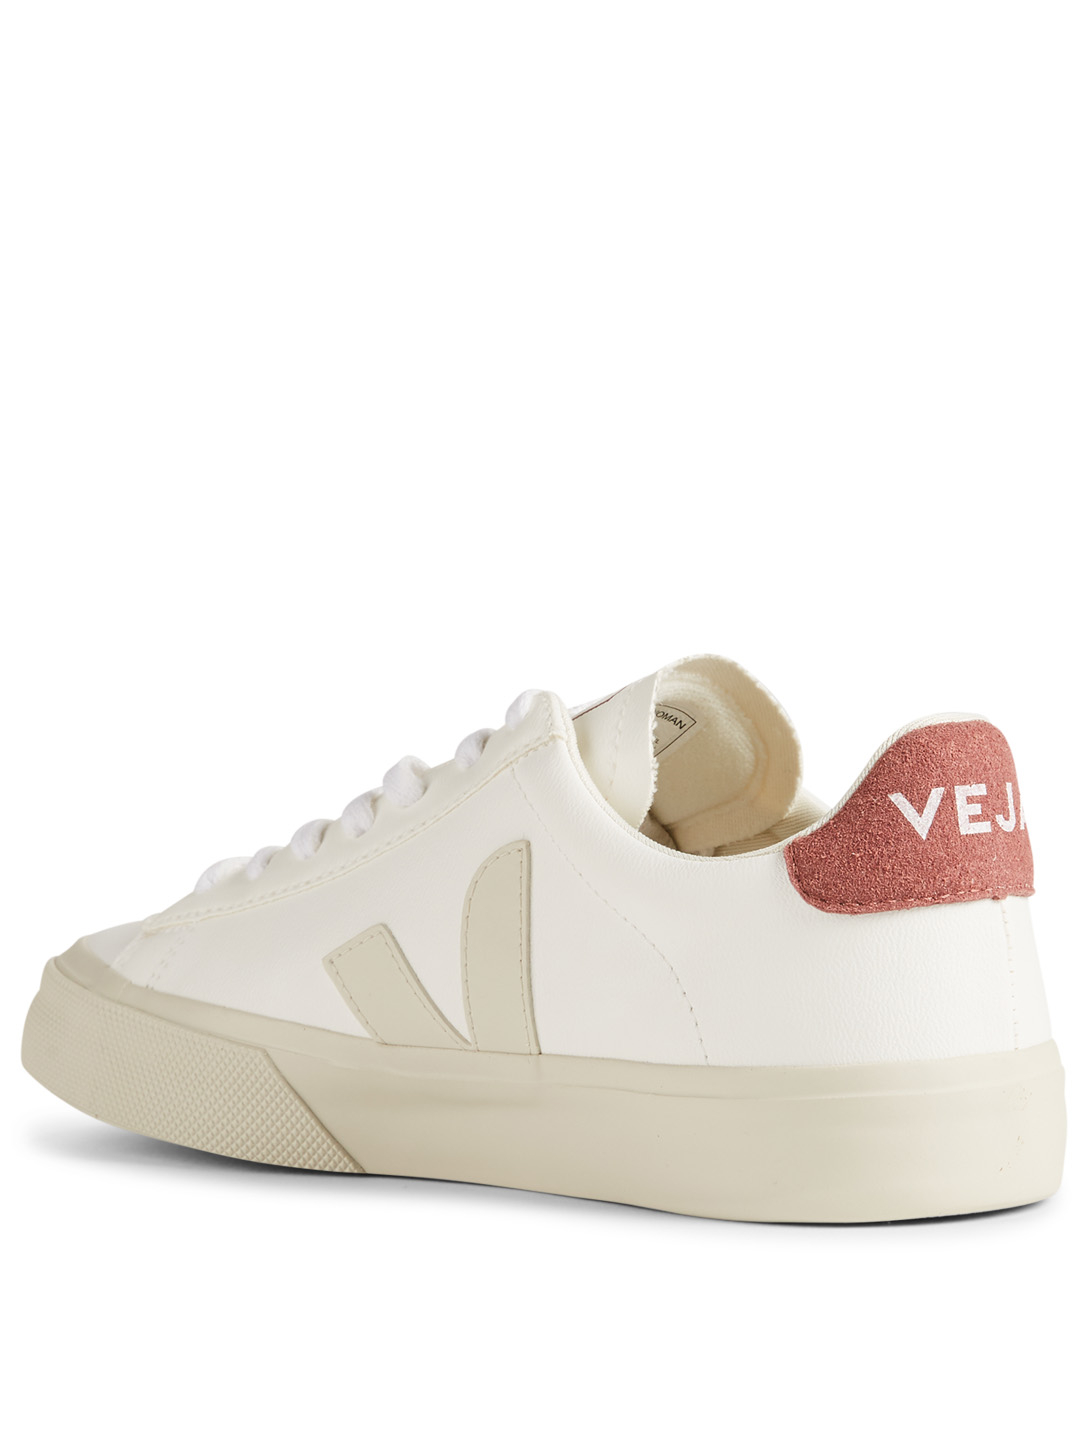 VEJA Campo Vegan Leather Sneakers Women's Pink